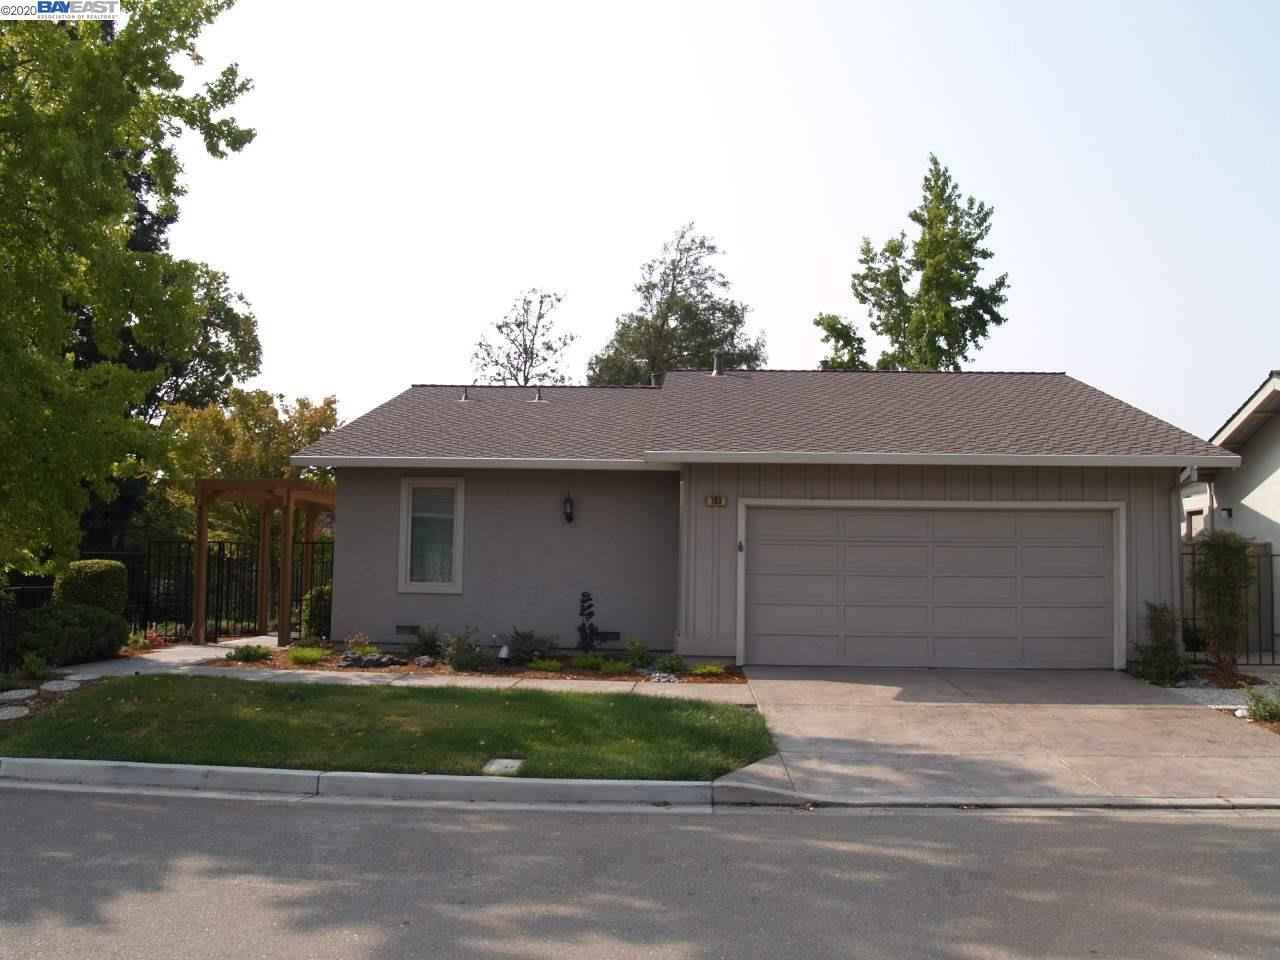 Photo for 703 Paradise Valley Ct, DANVILLE, CA 94526 (MLS # 40920966)